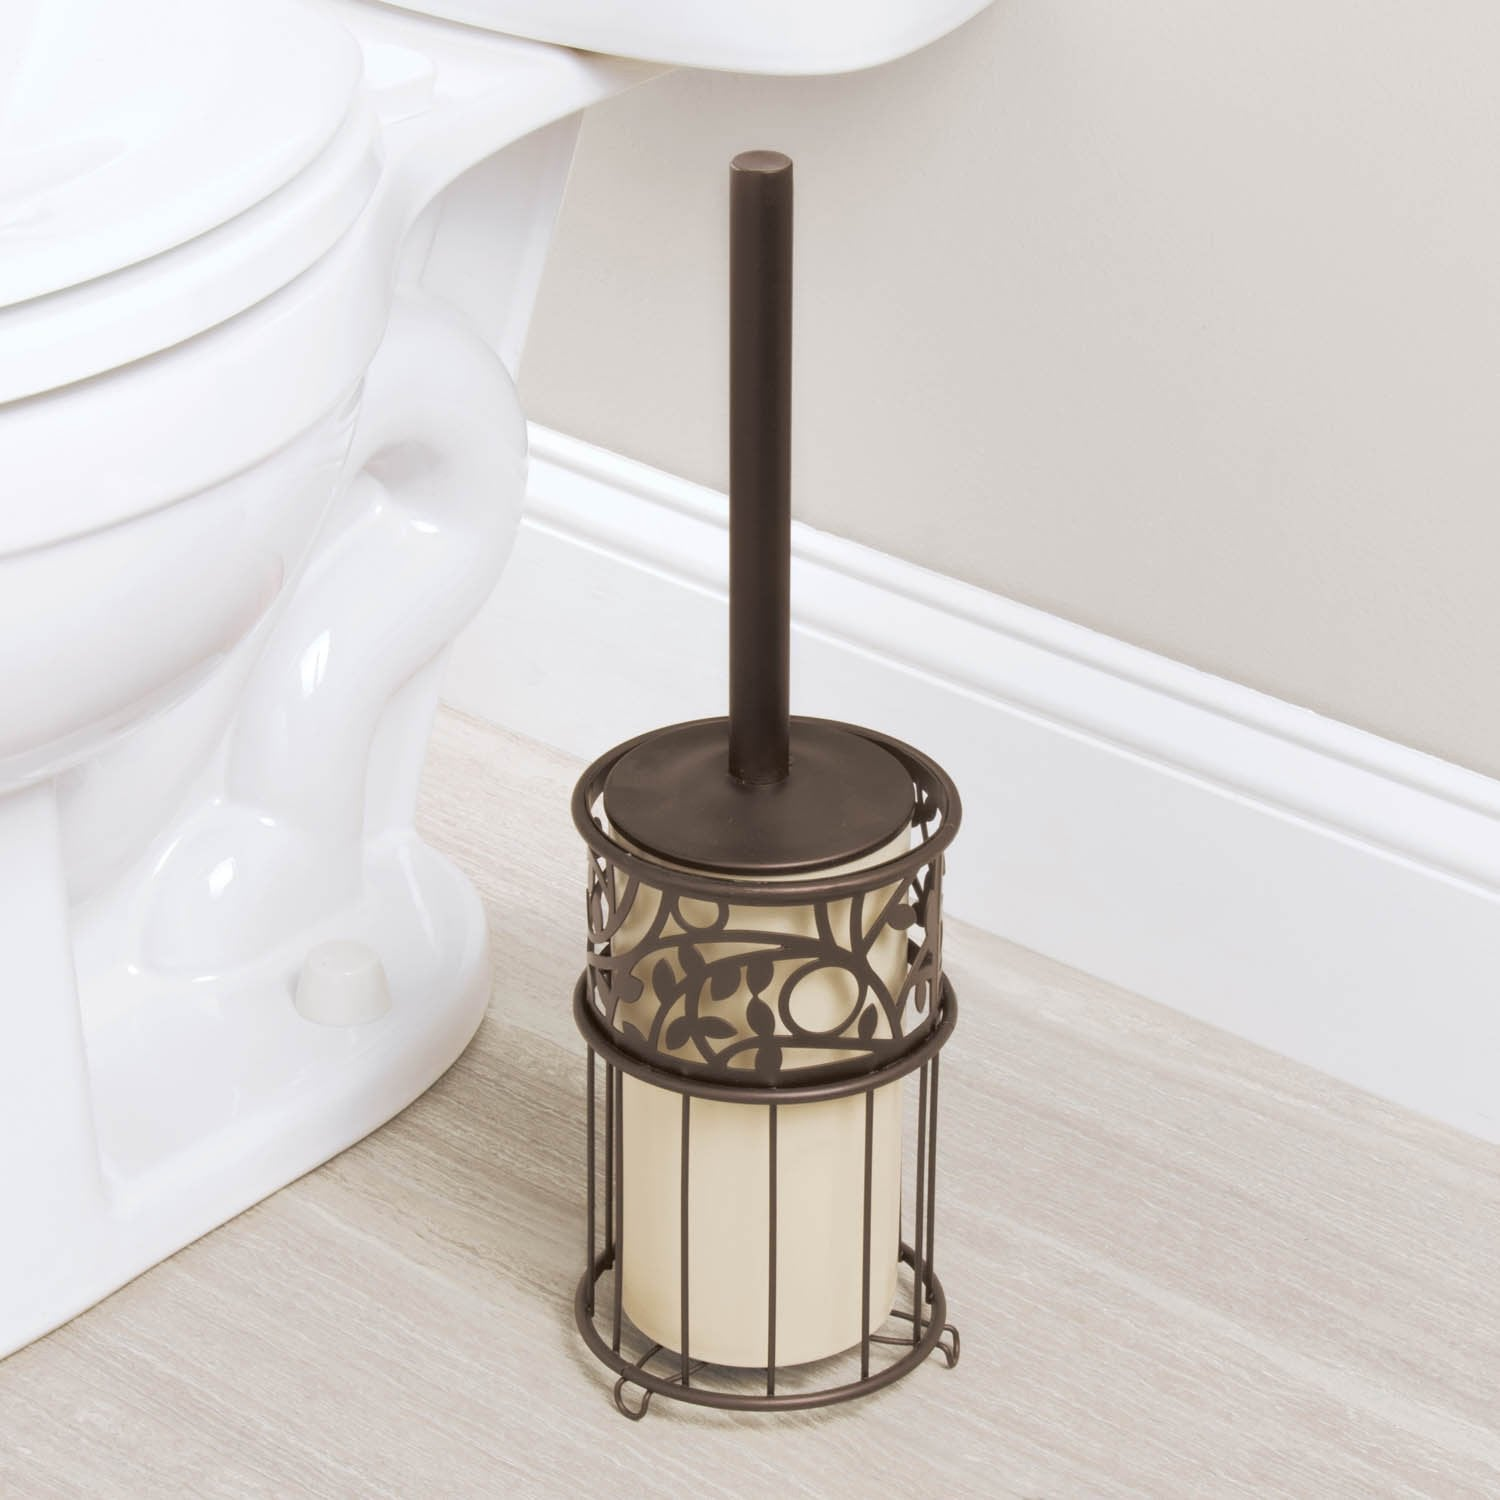 Toilet Cleaning & Organizing